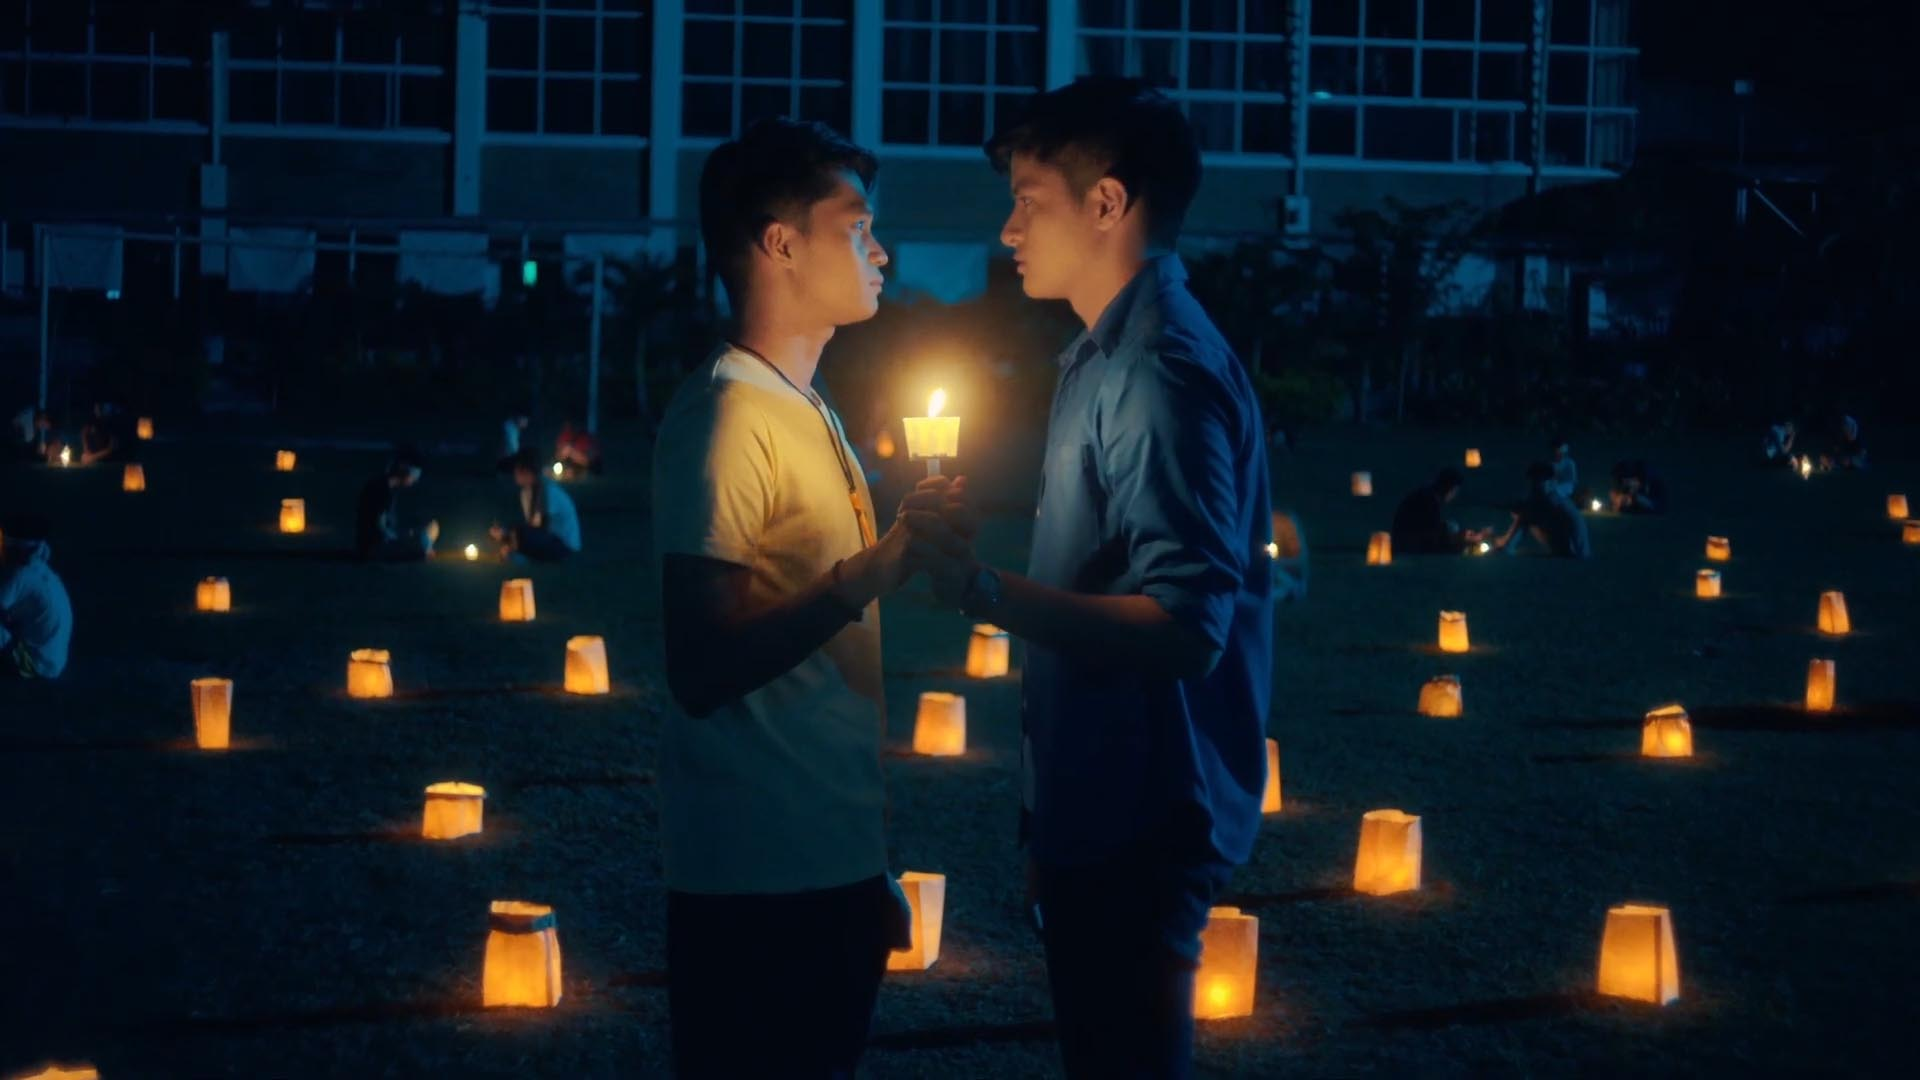 The Boy Foretold by the Stars film still